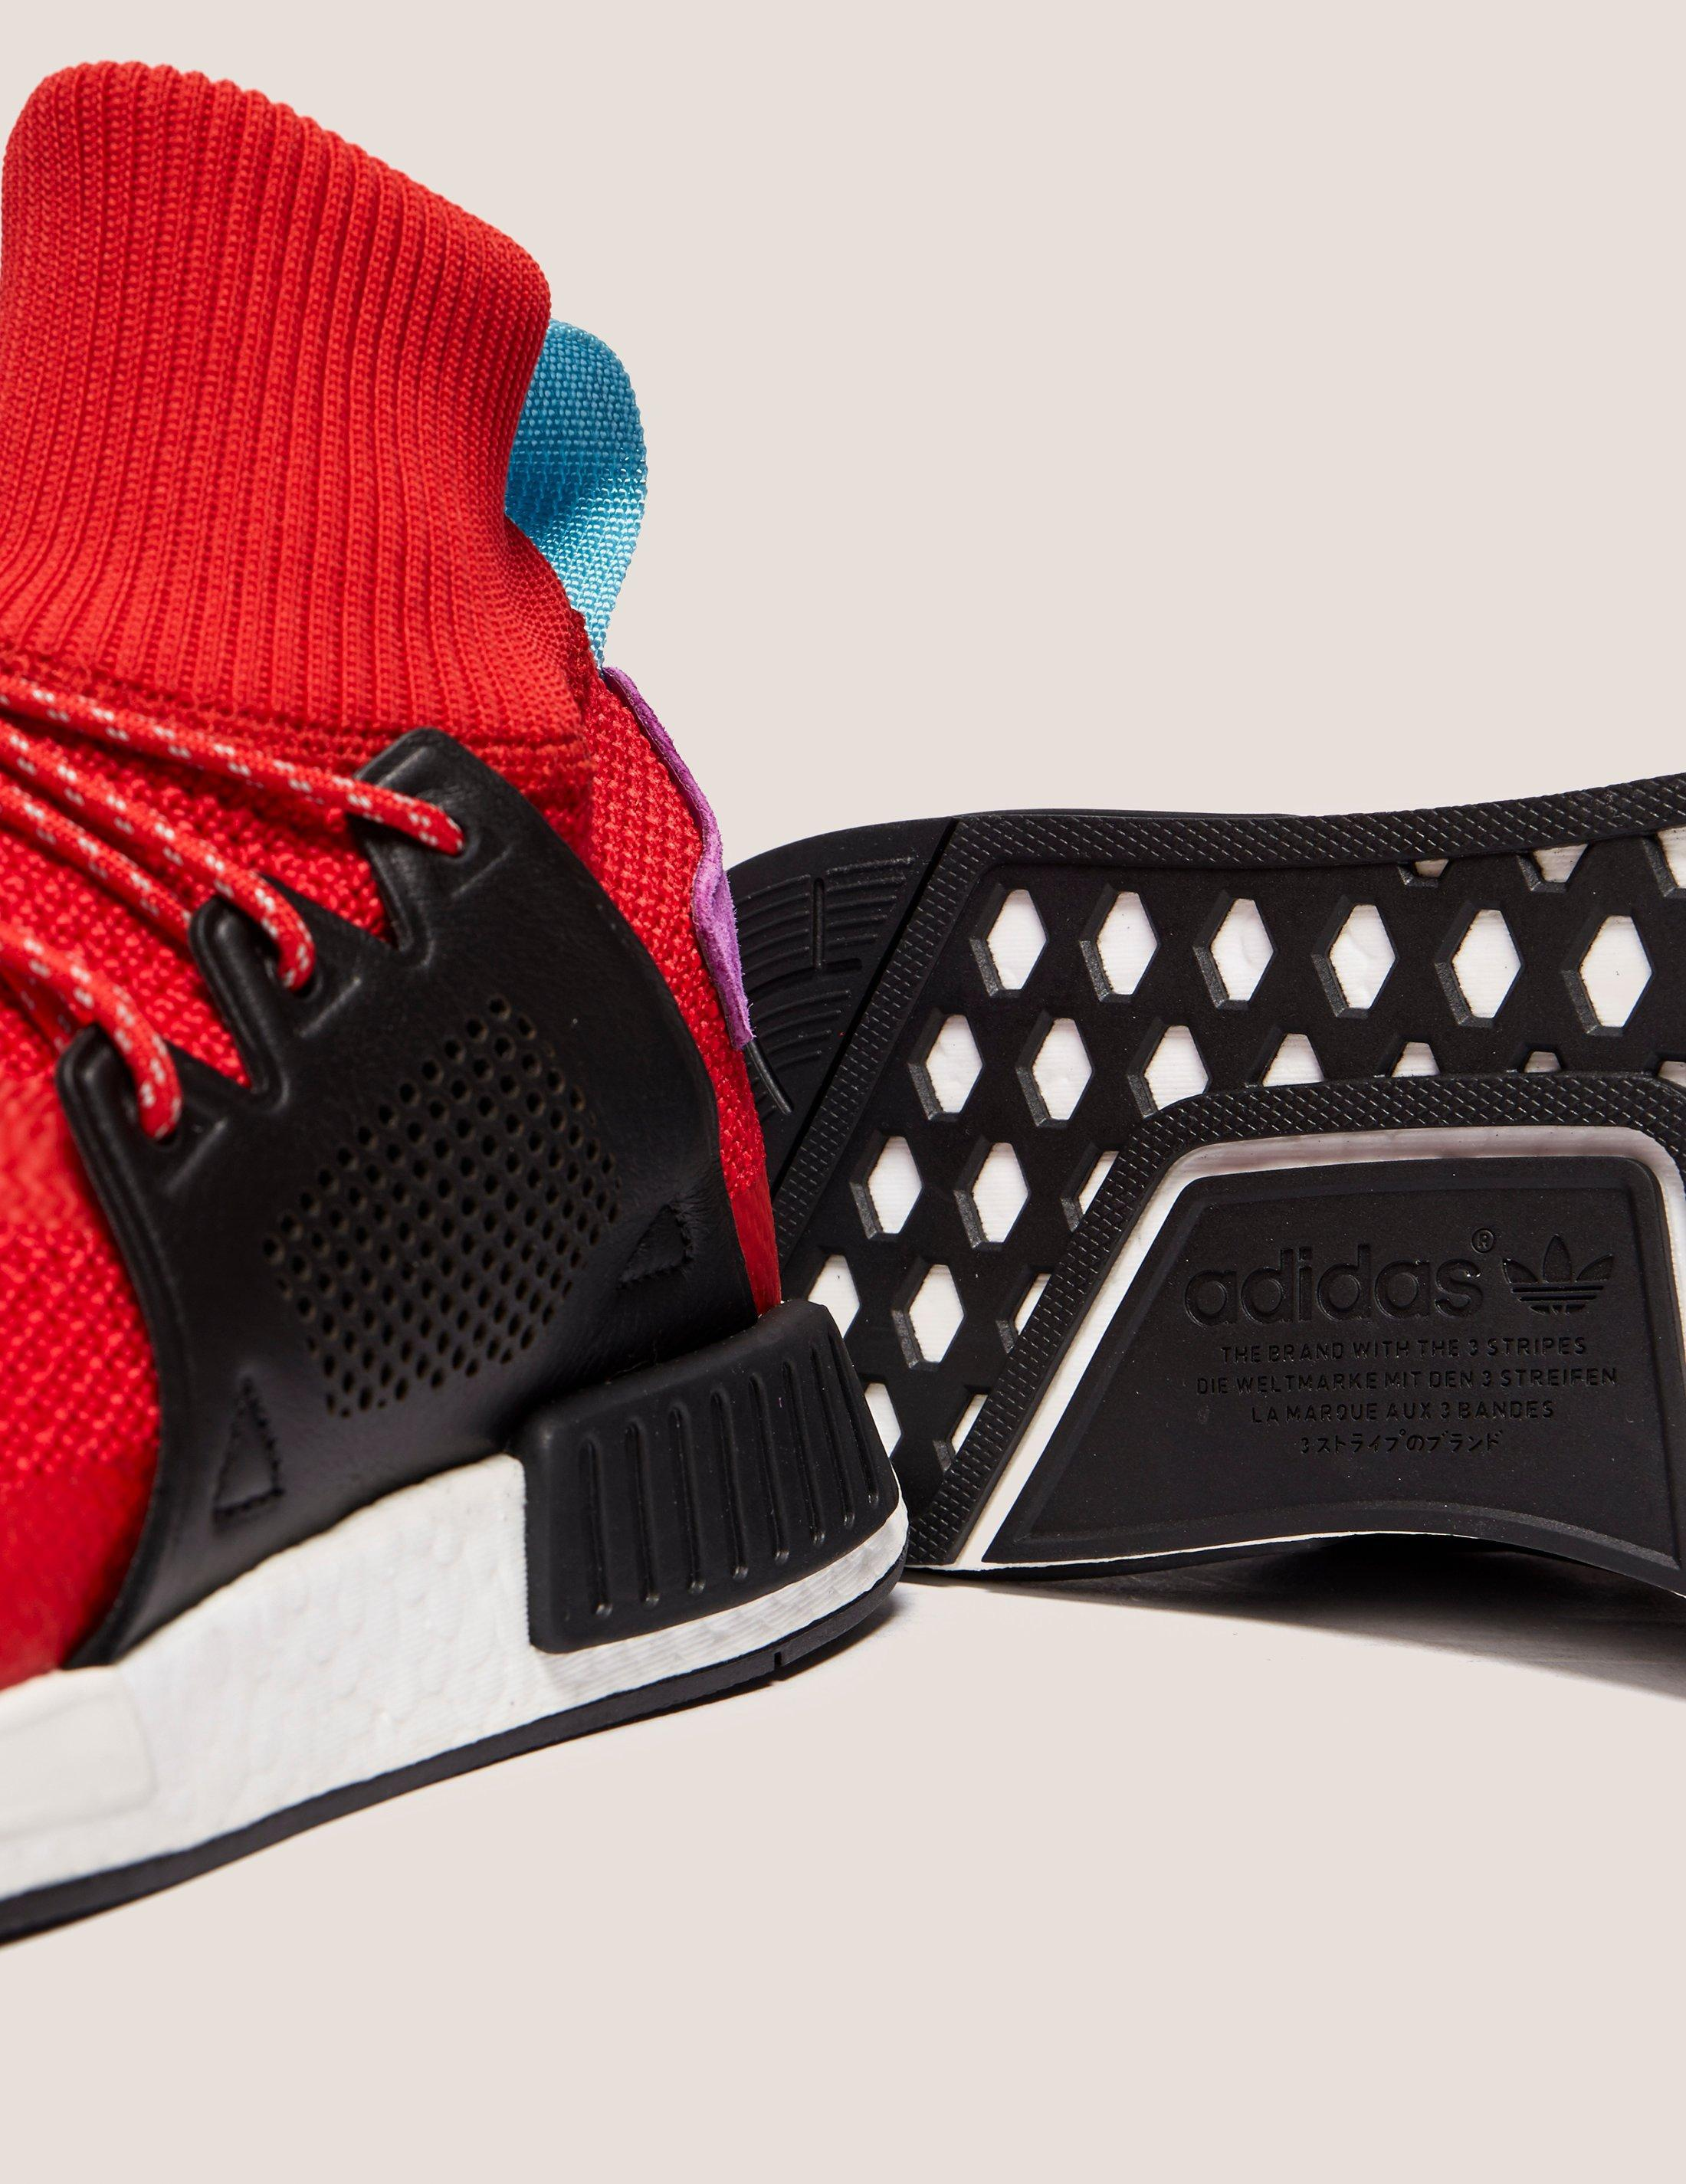 563a2a1a86d69 adidas Originals Mens Nmd Xr1 Winter Red in Red for Men - Lyst